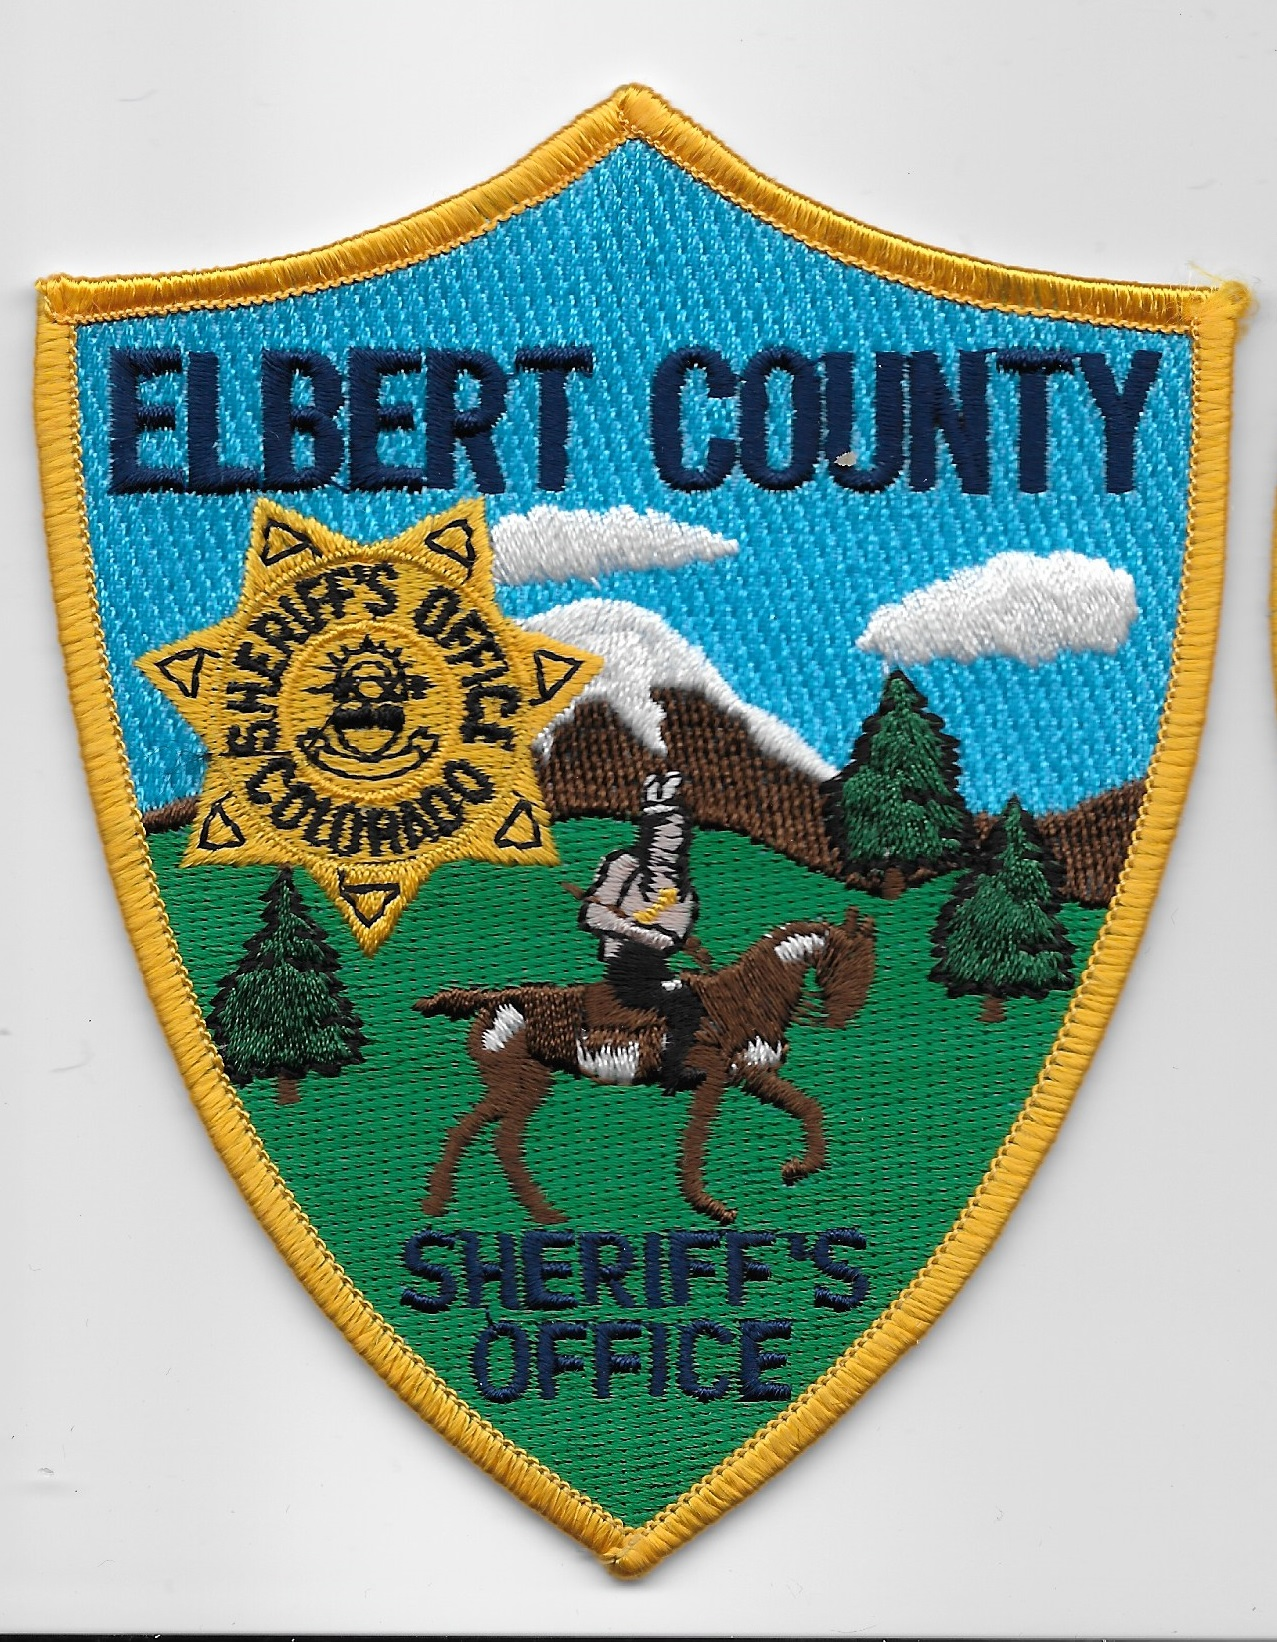 Elbert County Sheriff CO